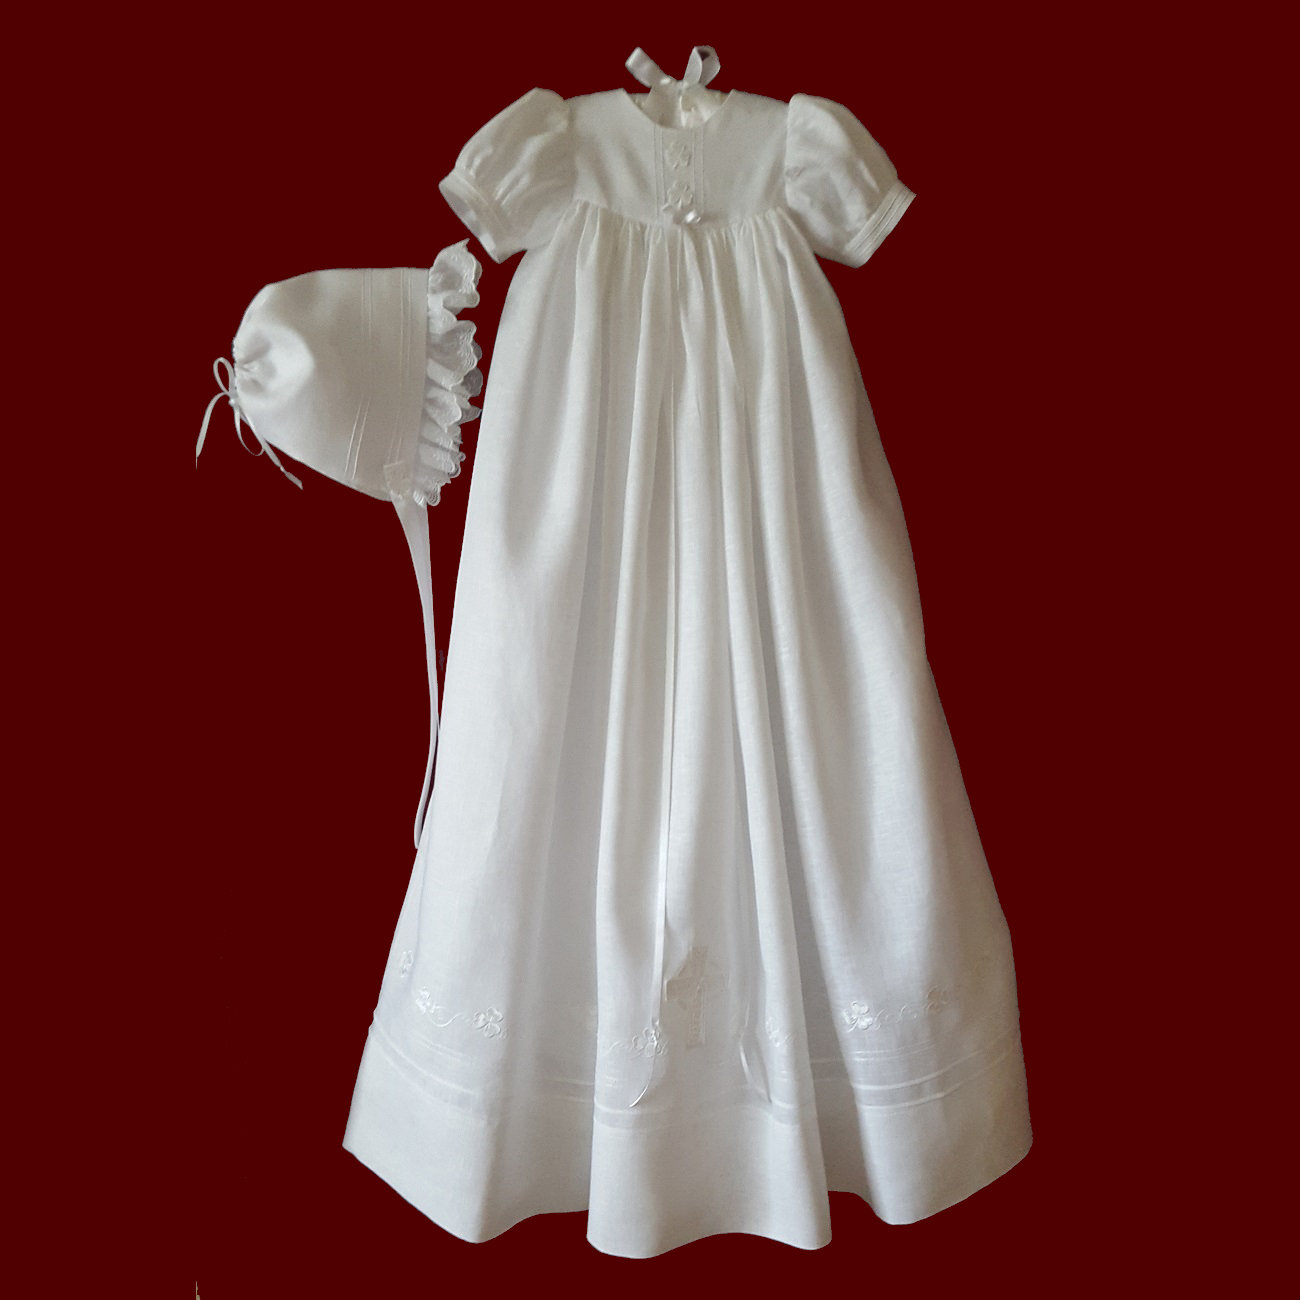 Traditional Unisex Irish Christening Gown with Shamrock Swirl Border & Celtic Cross, Slip & Hat